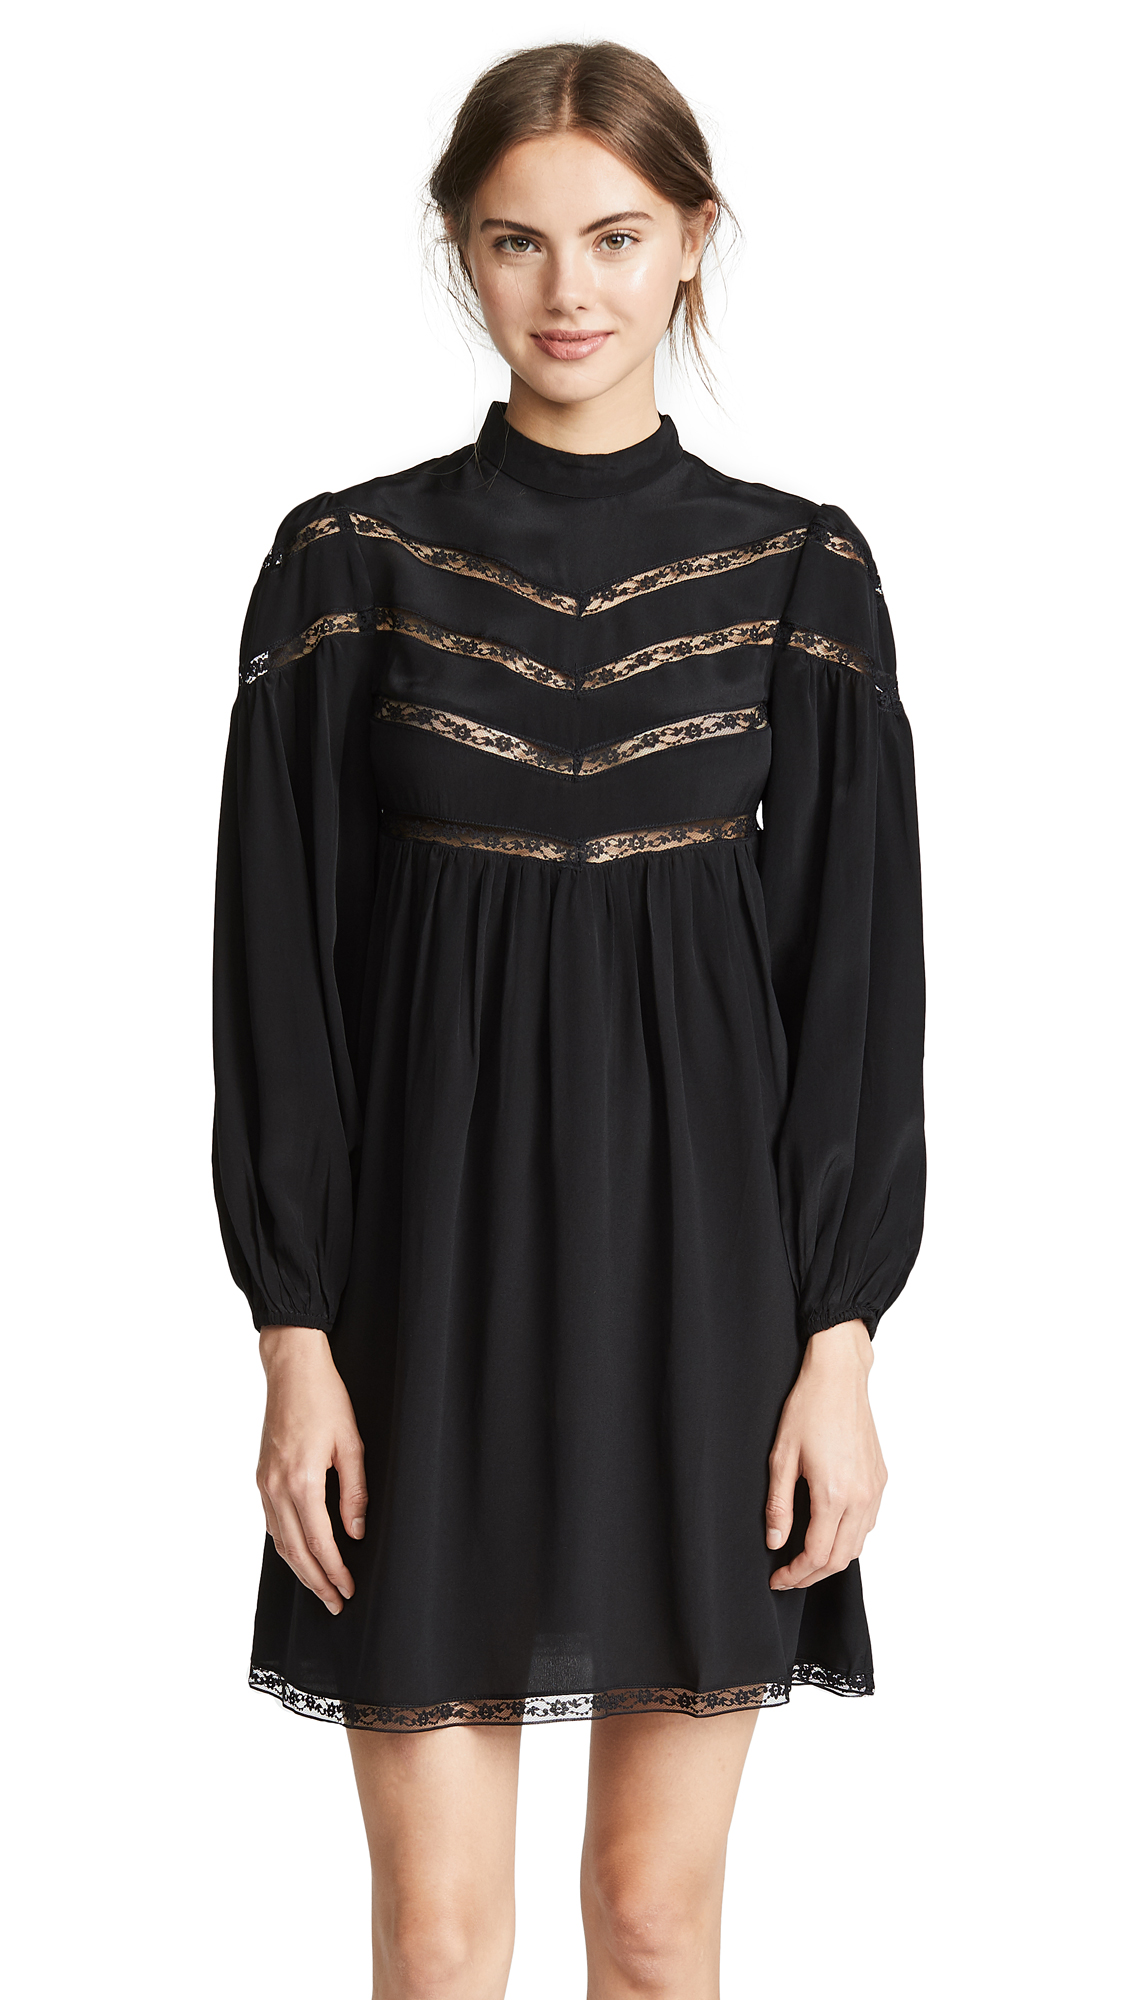 Zimmermann Chevron Lace Dress - Black